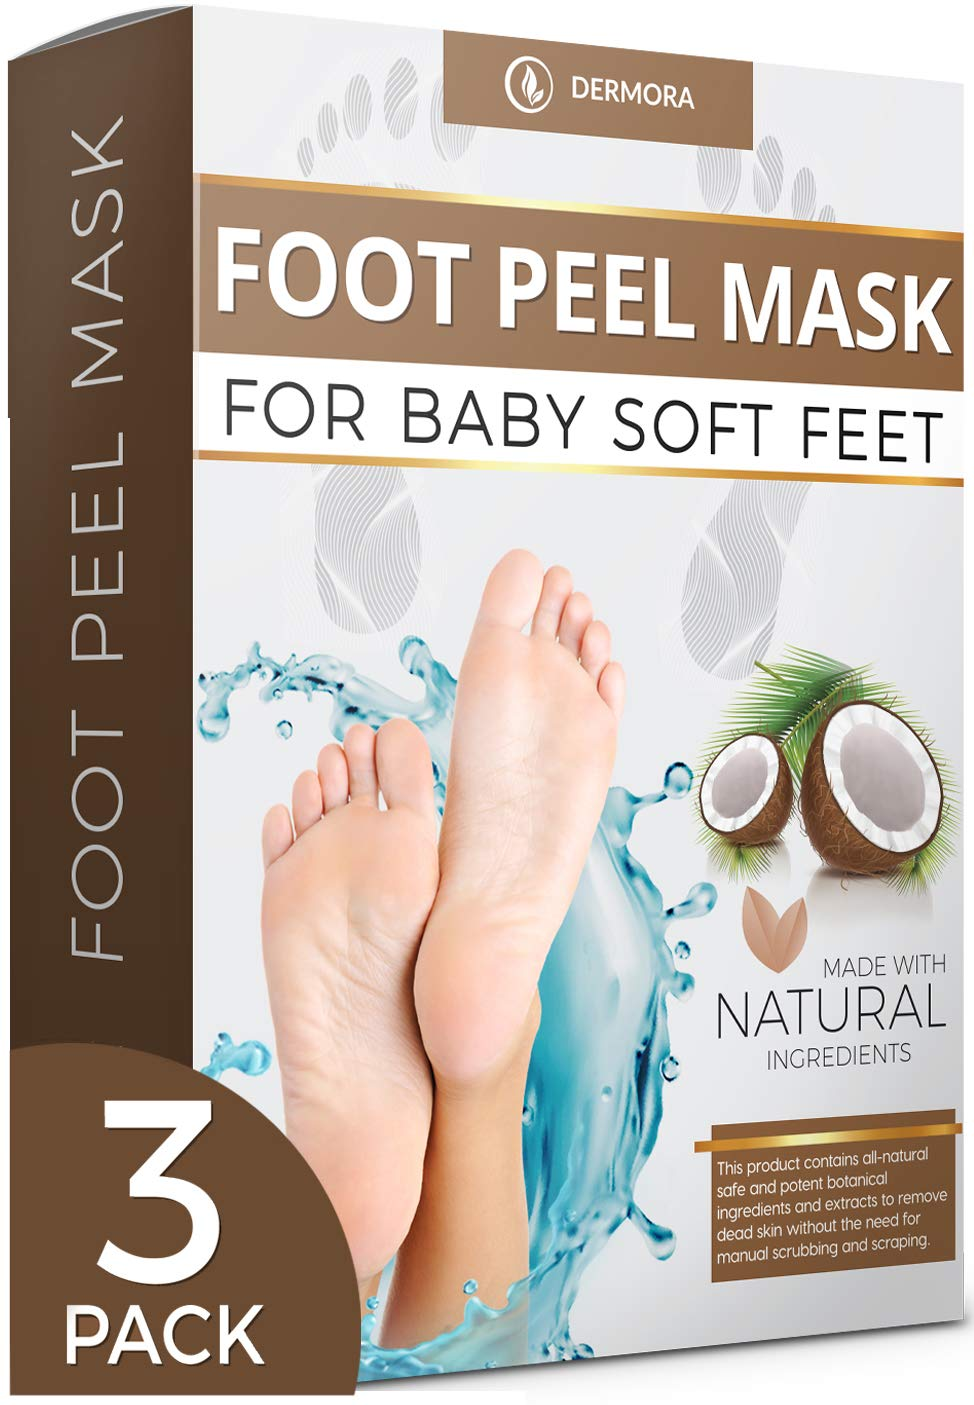 Coconut Foot Peel Mask - 3 Pack - For Cracked Heels, Dead Skin & Calluses - Make Your Feet Baby Soft Get Smooth Silky Skin - Removes Rough Heels, Dry Skin - Natural Treatment